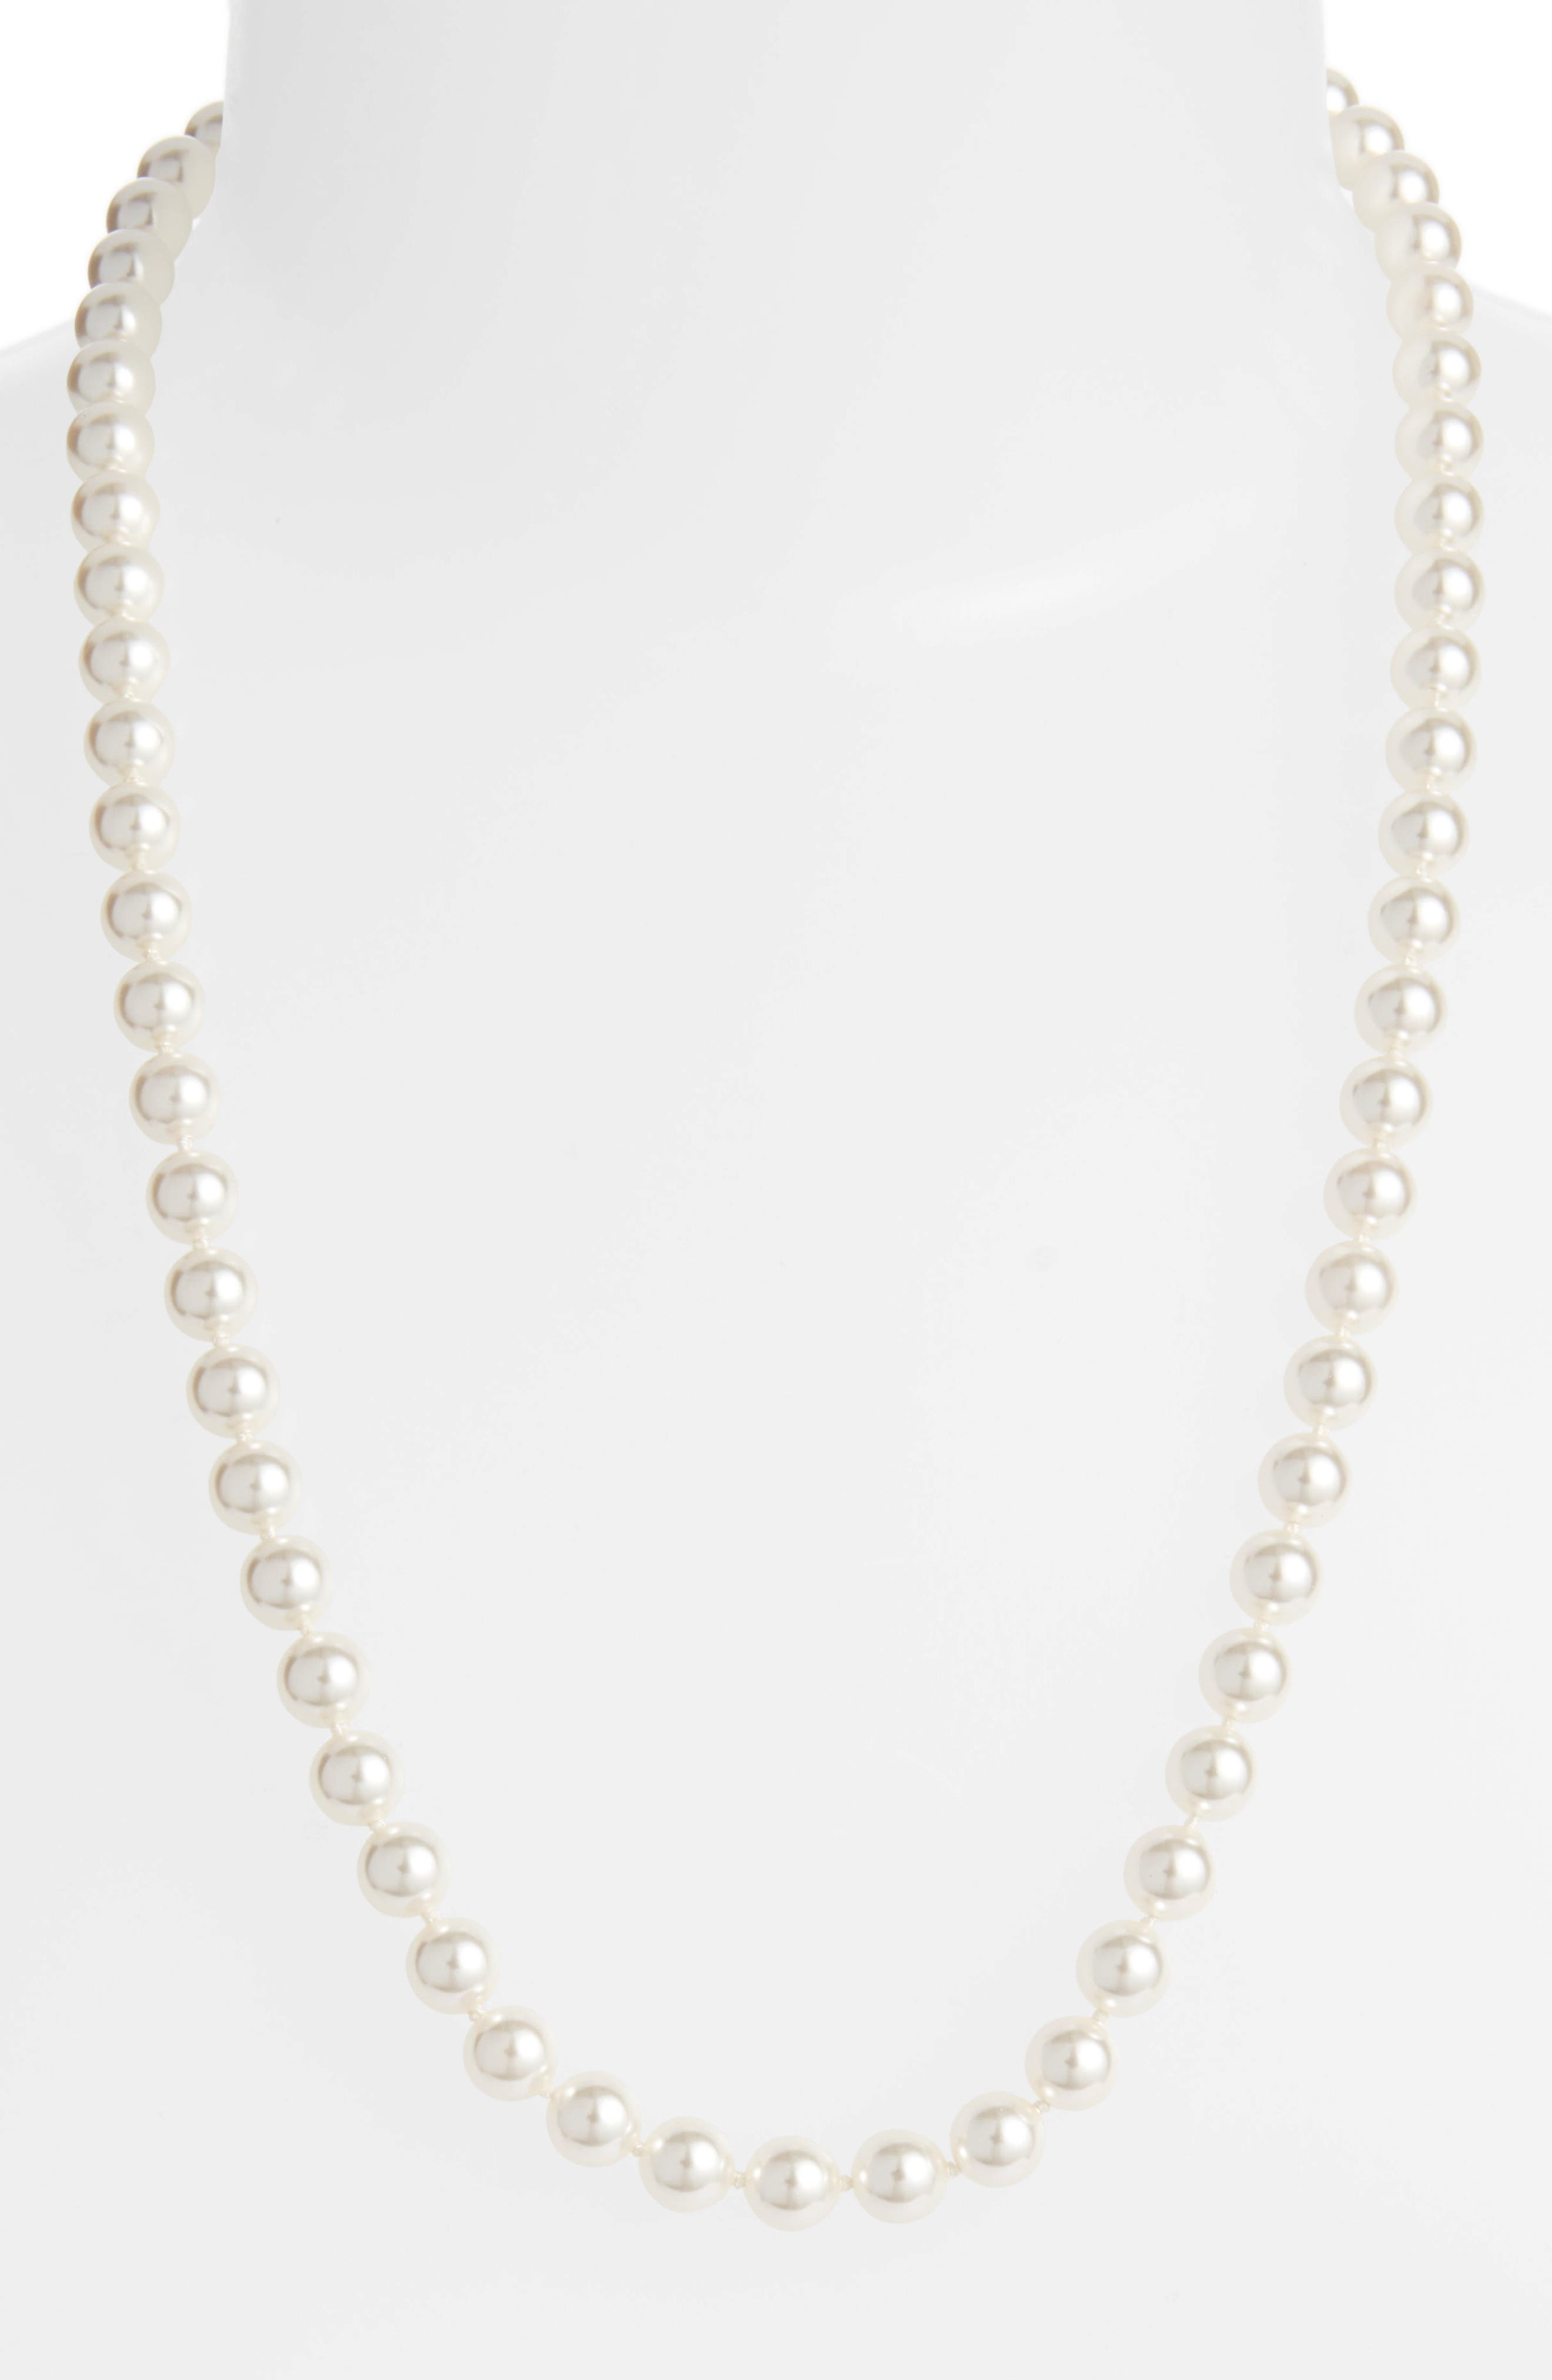 Simulated Pearl Long Necklace,                             Alternate thumbnail 2, color,                             PEARL/ SILVER